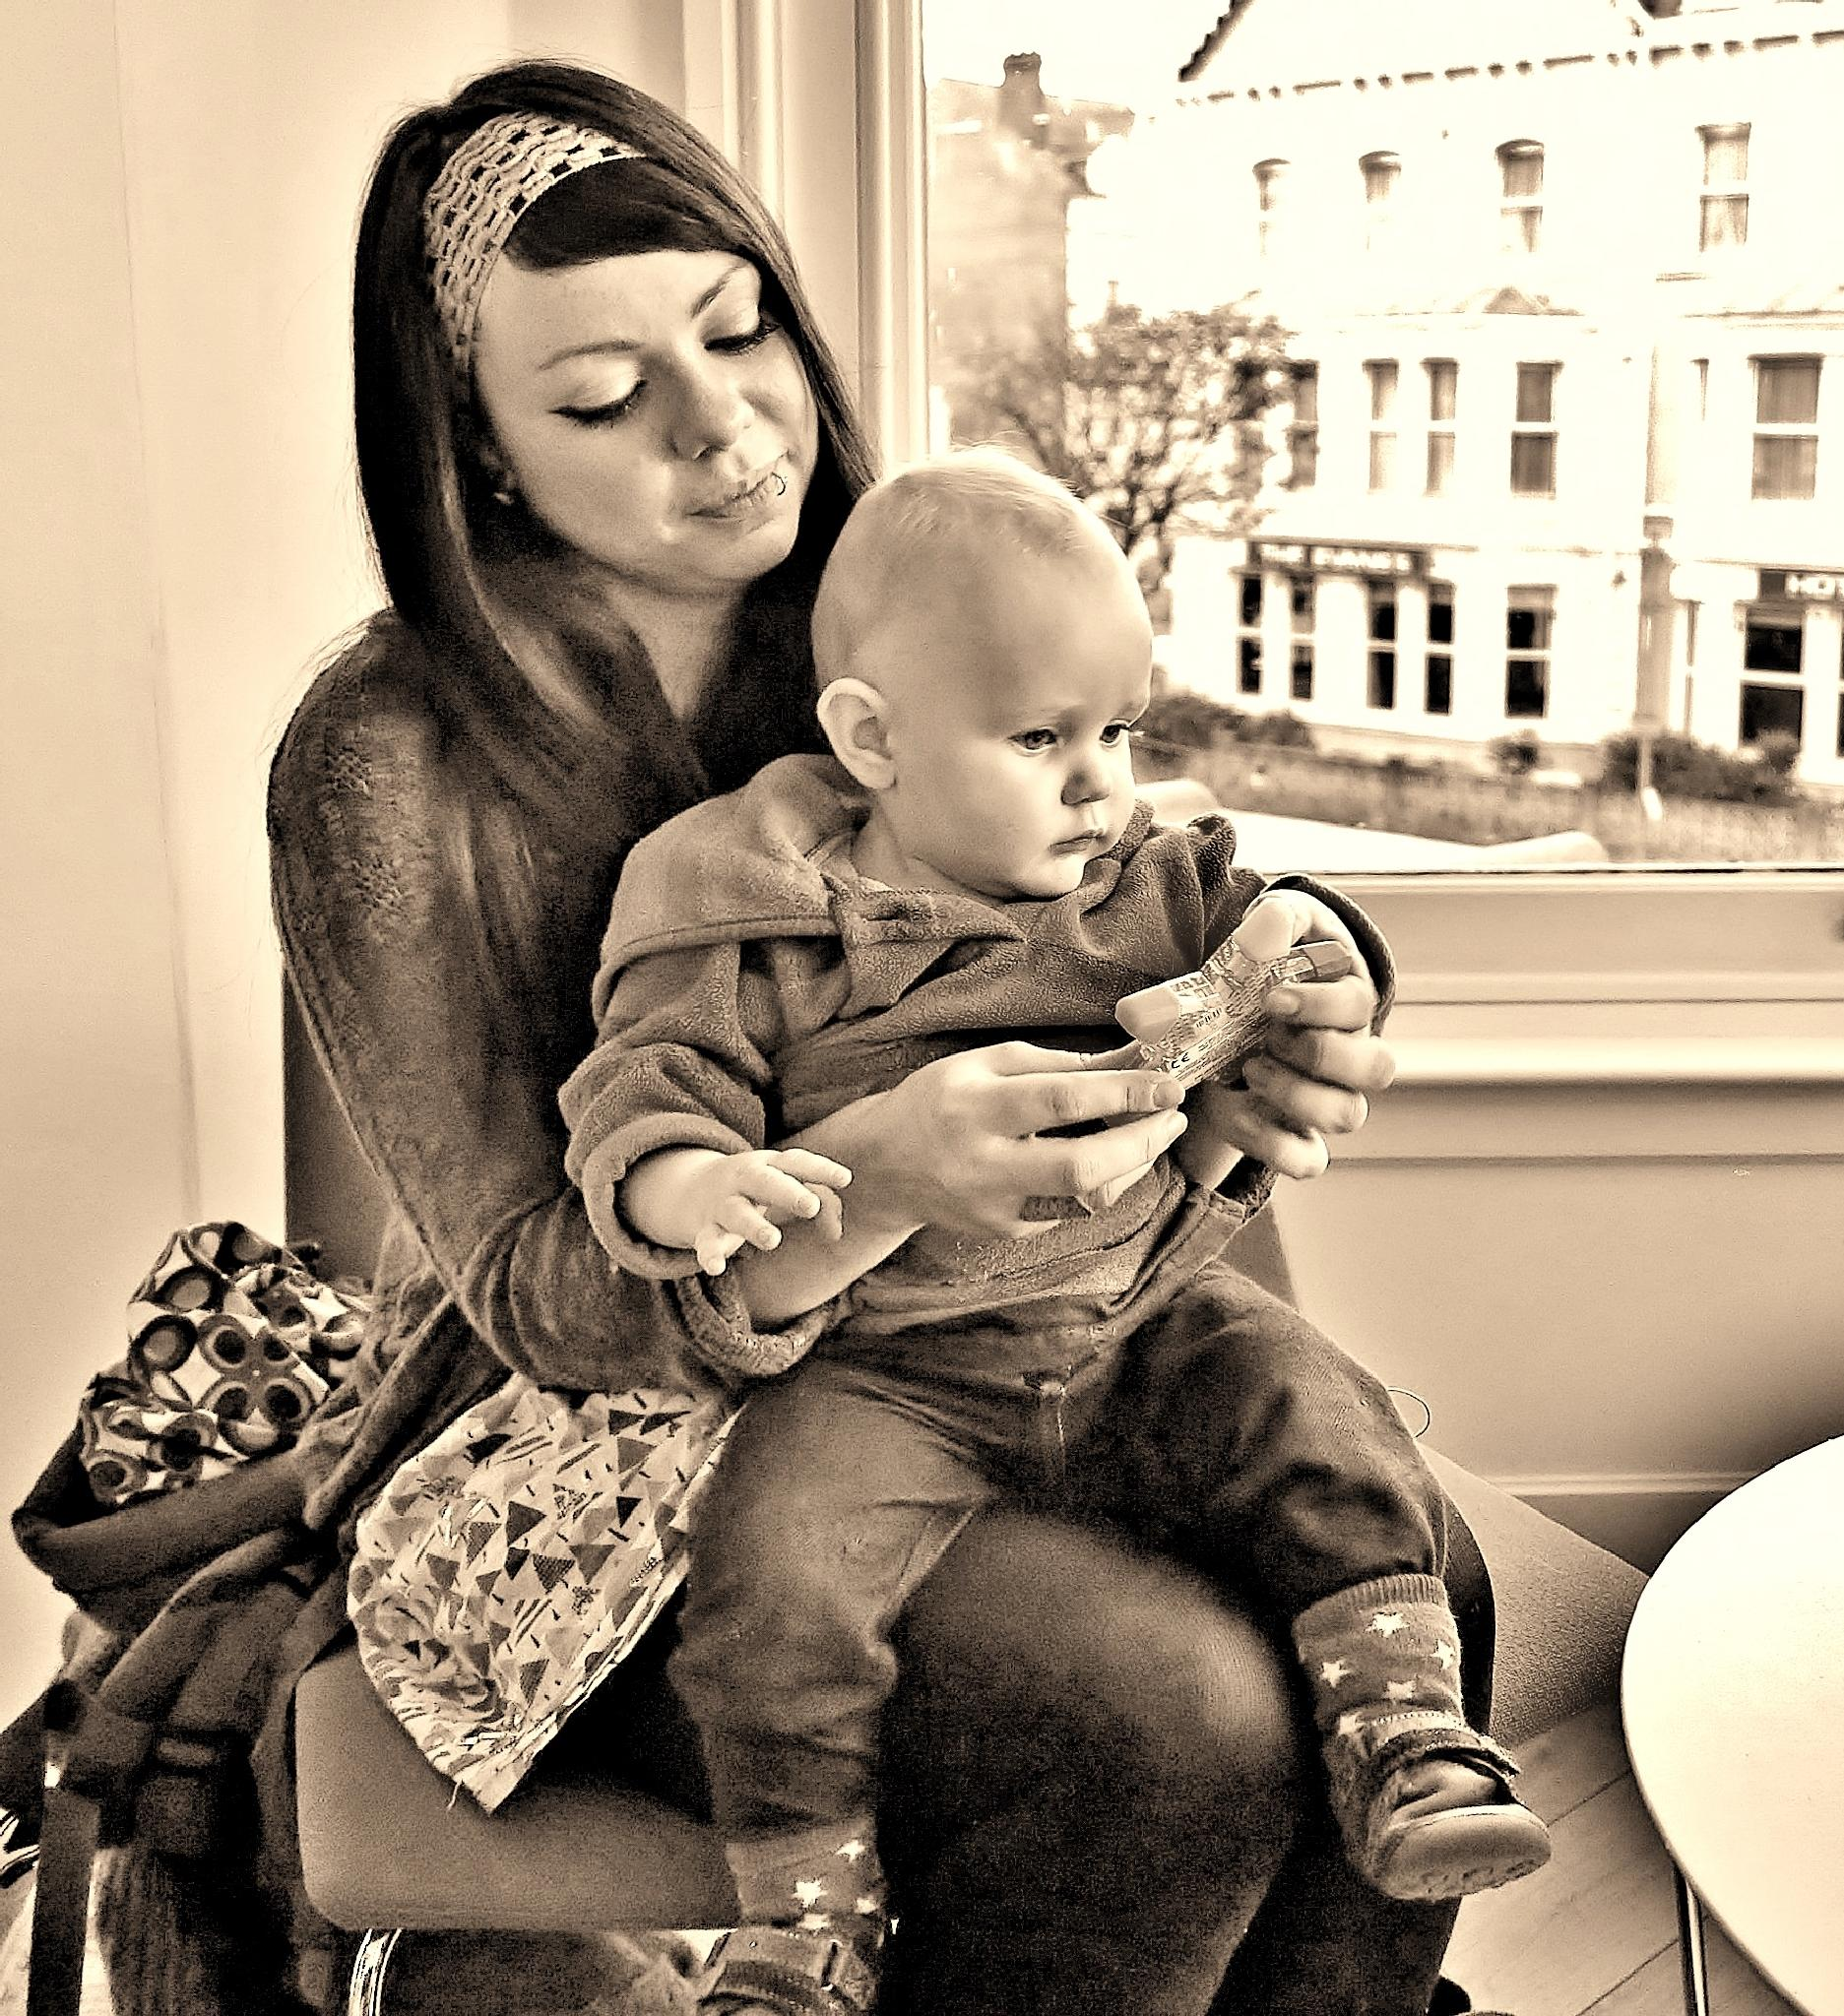 Mother & Child Play in Cafe - Monochrome by paul.hosker